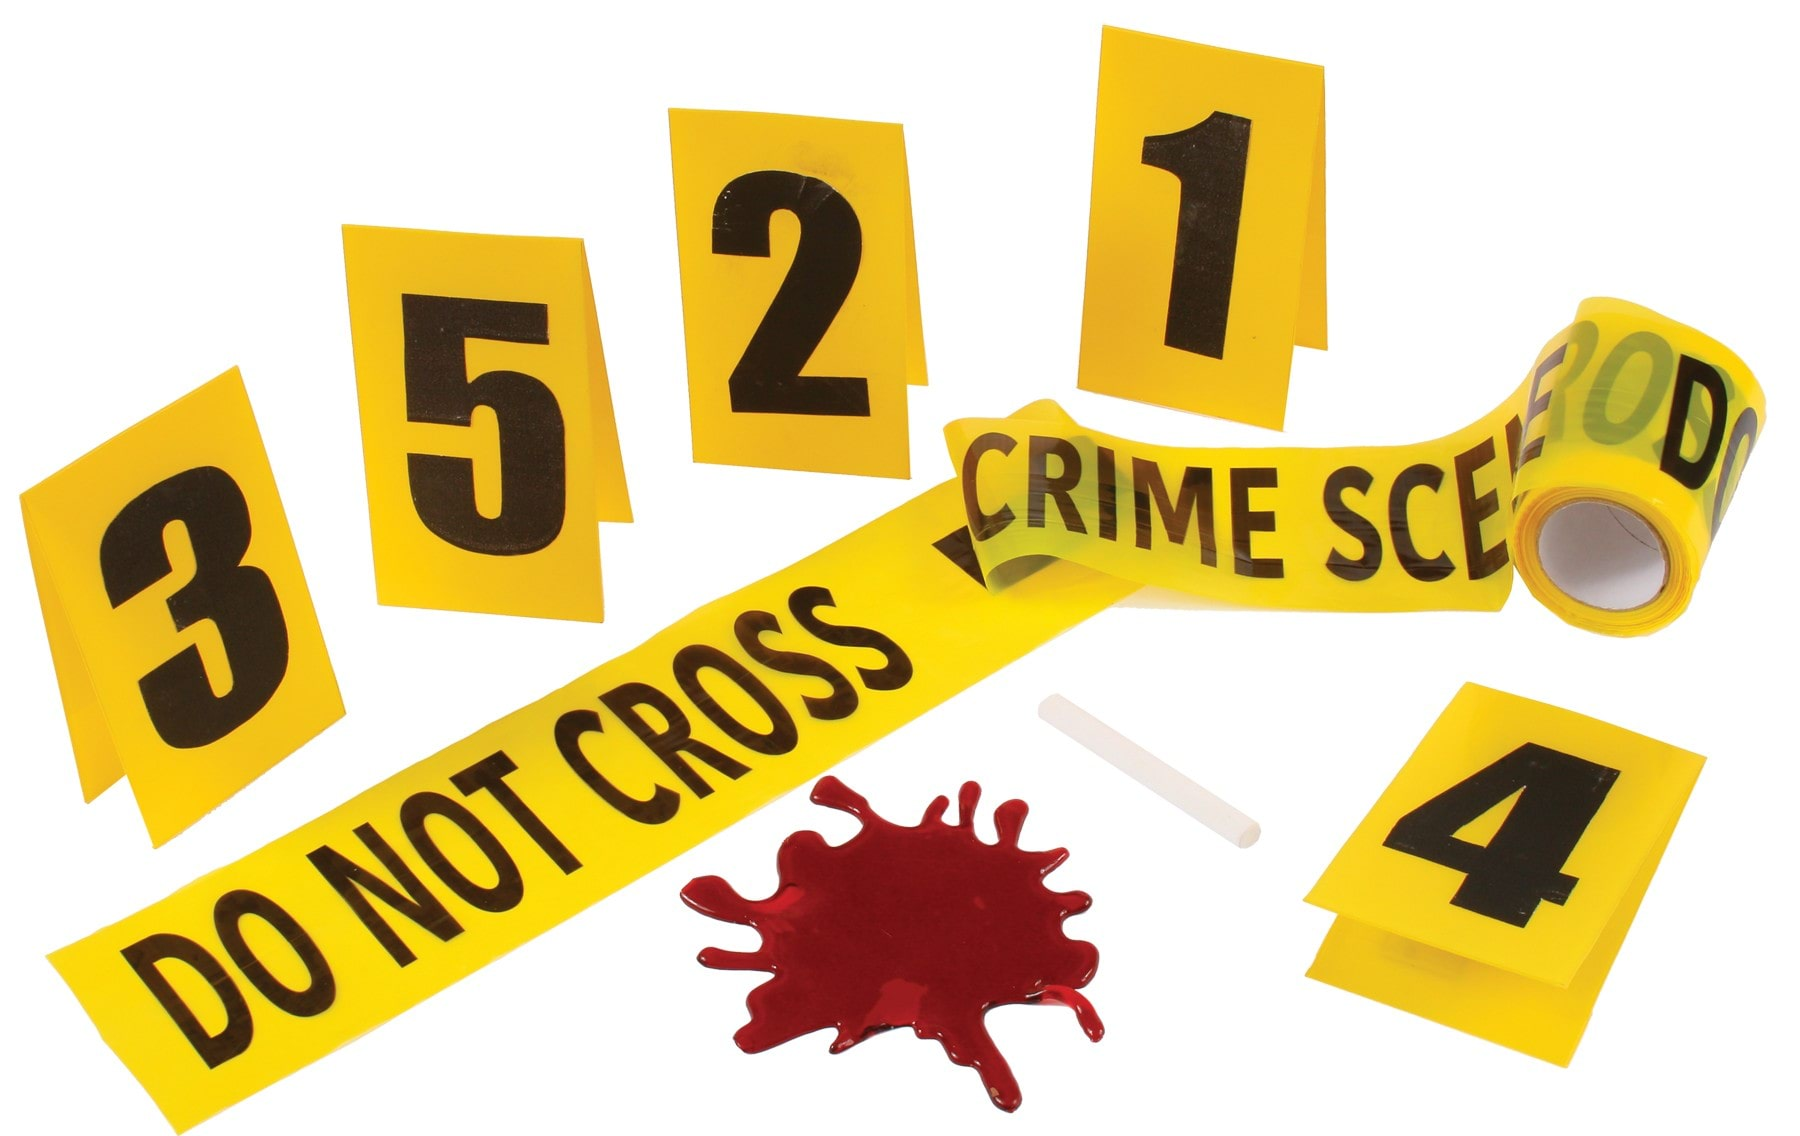 crime scene kit with blood splat props costumes com au rh costumes com au Crime Scene Evidence Clip Art Crime Scene Evidence Clip Art